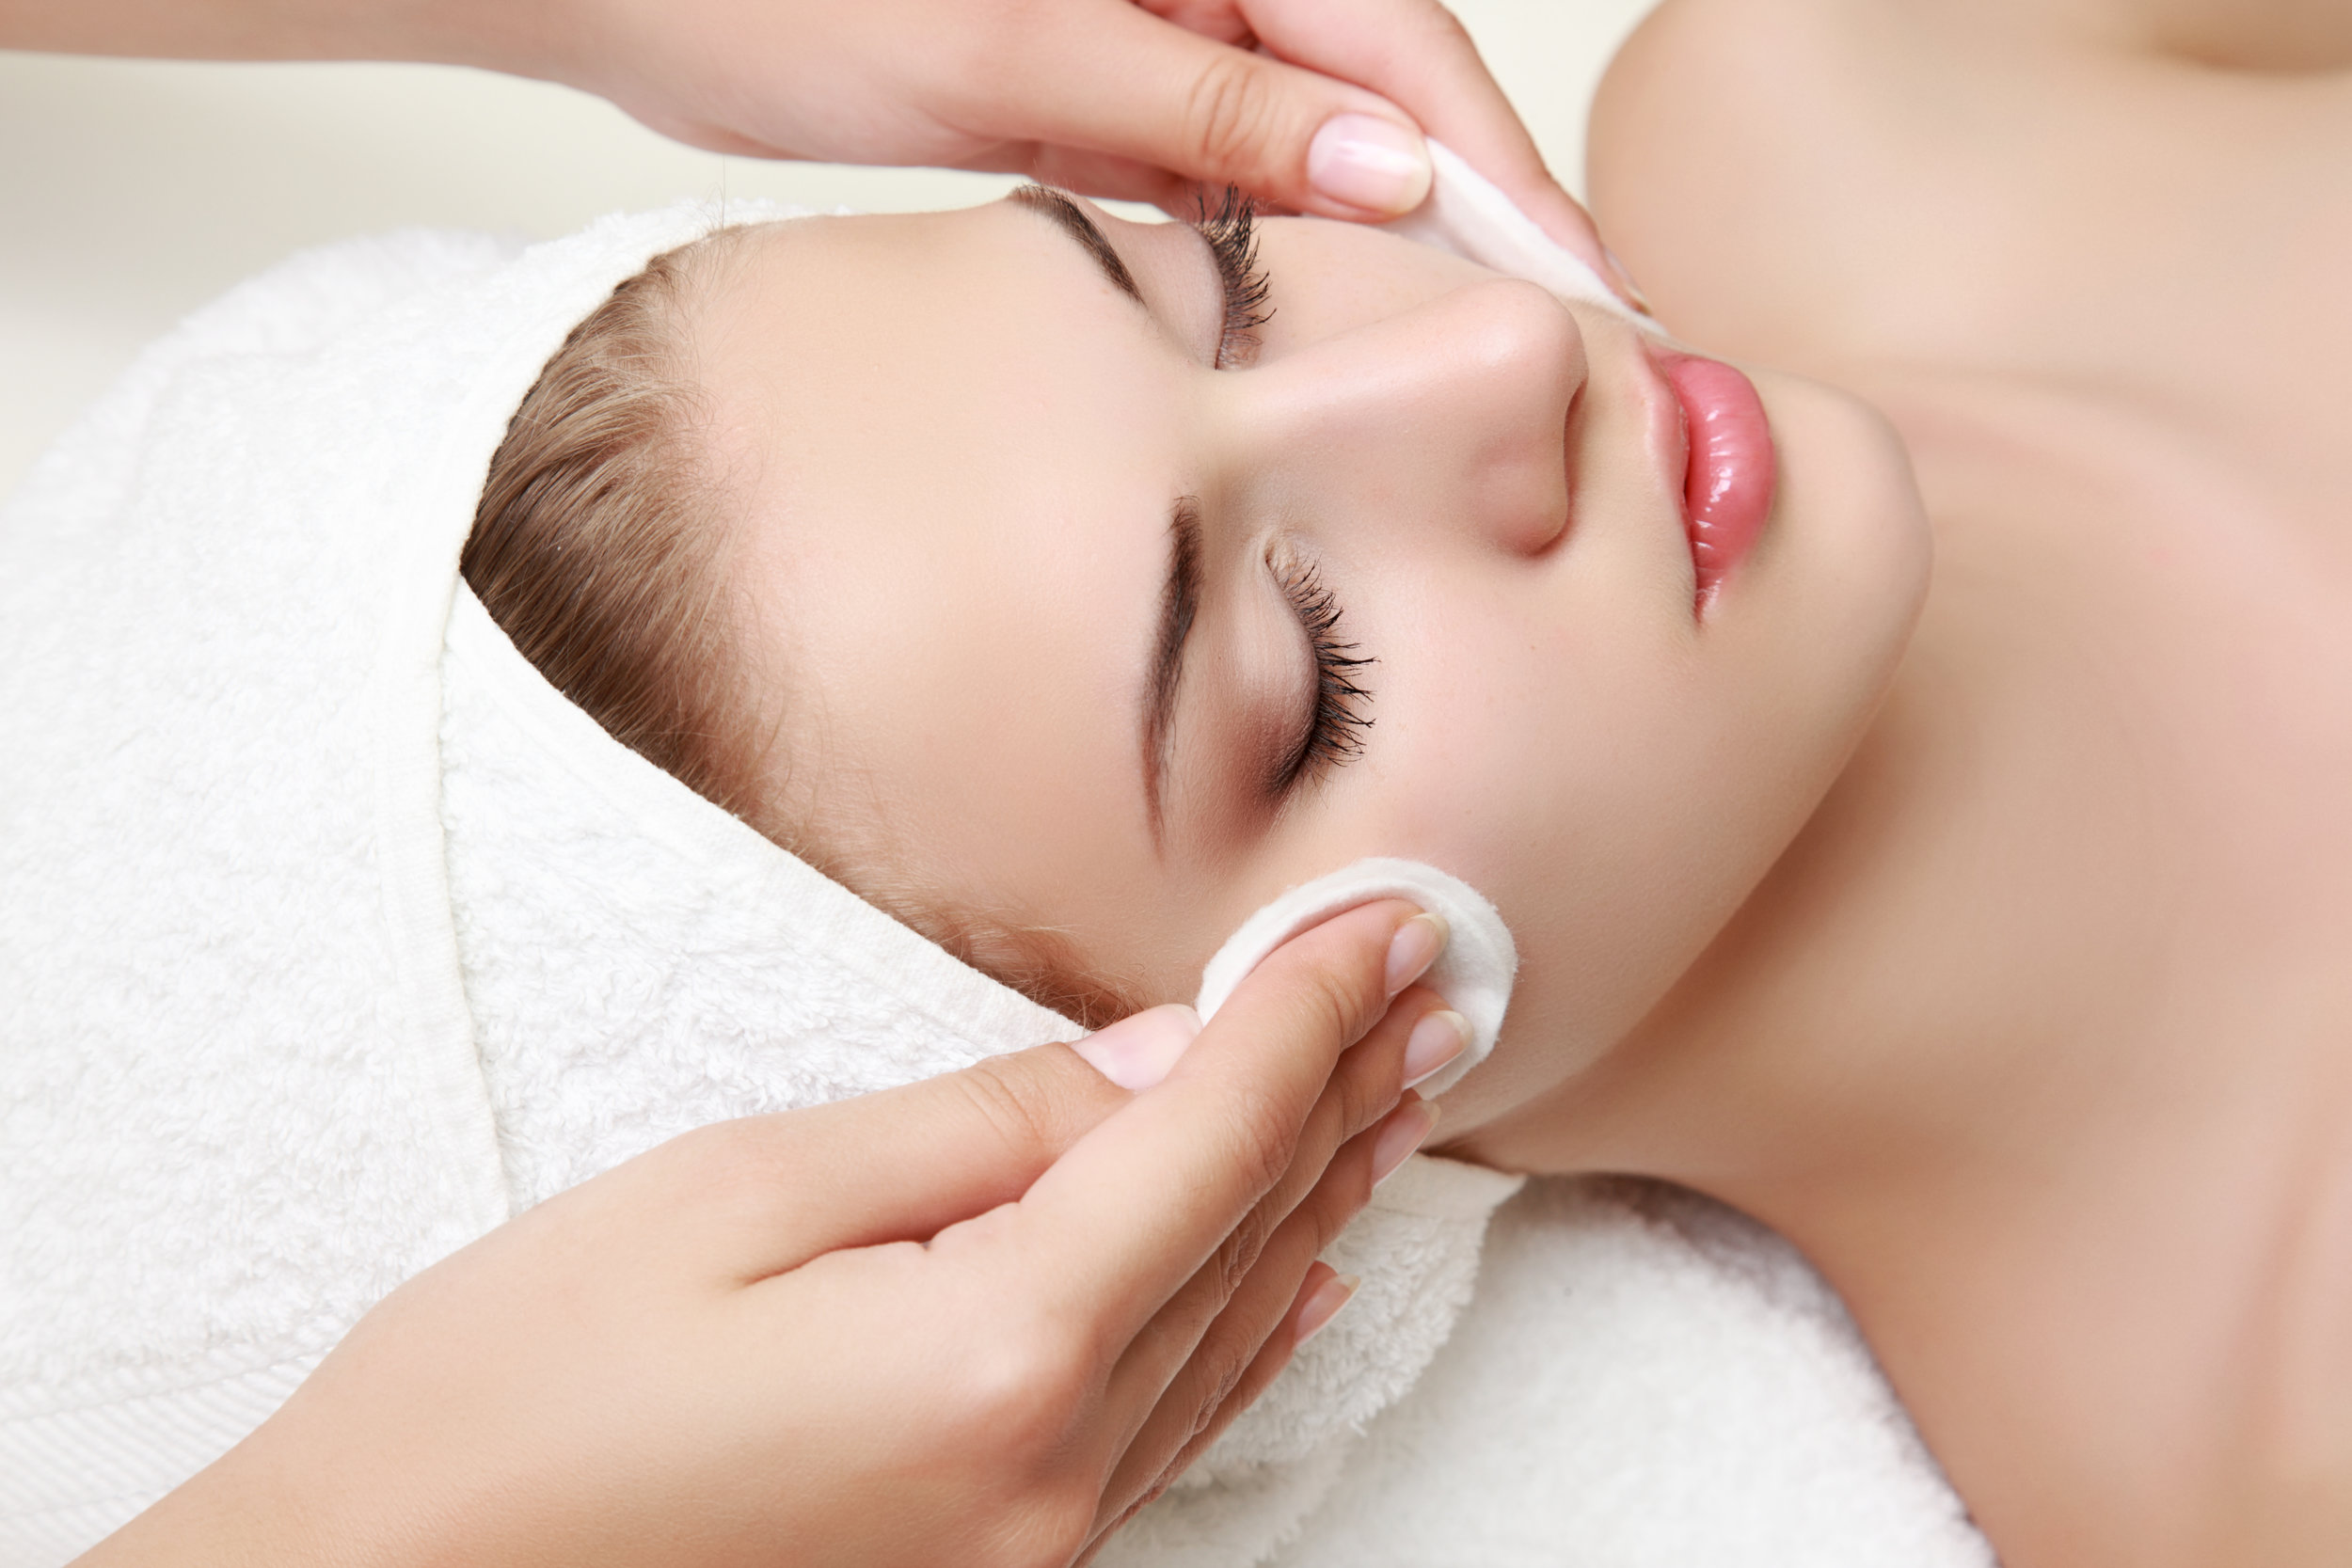 - Chemical peels use a safe chemical solution to brighten your skin and smooth the texture of your skin by removing the damaged outer layers.